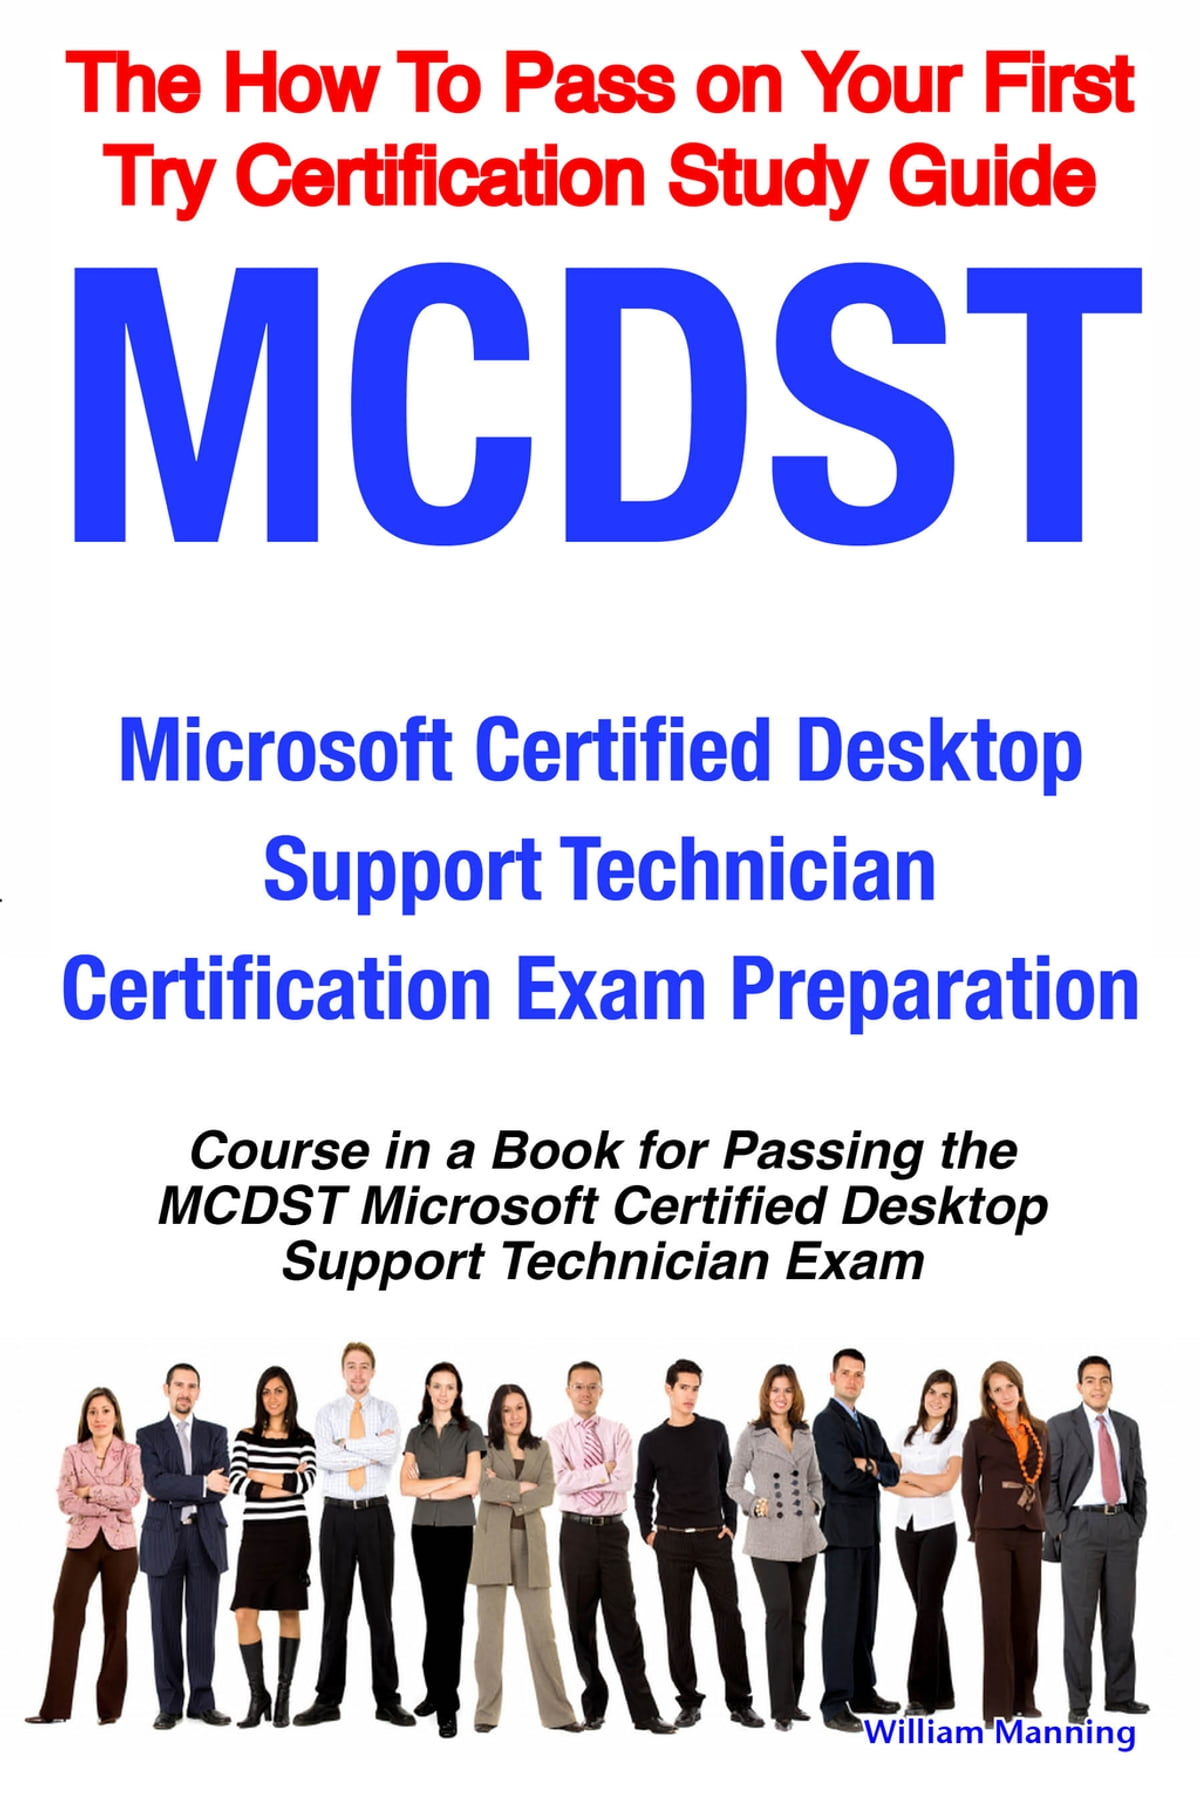 Mcdst Microsoft Certified Desktop Support Technician Certification